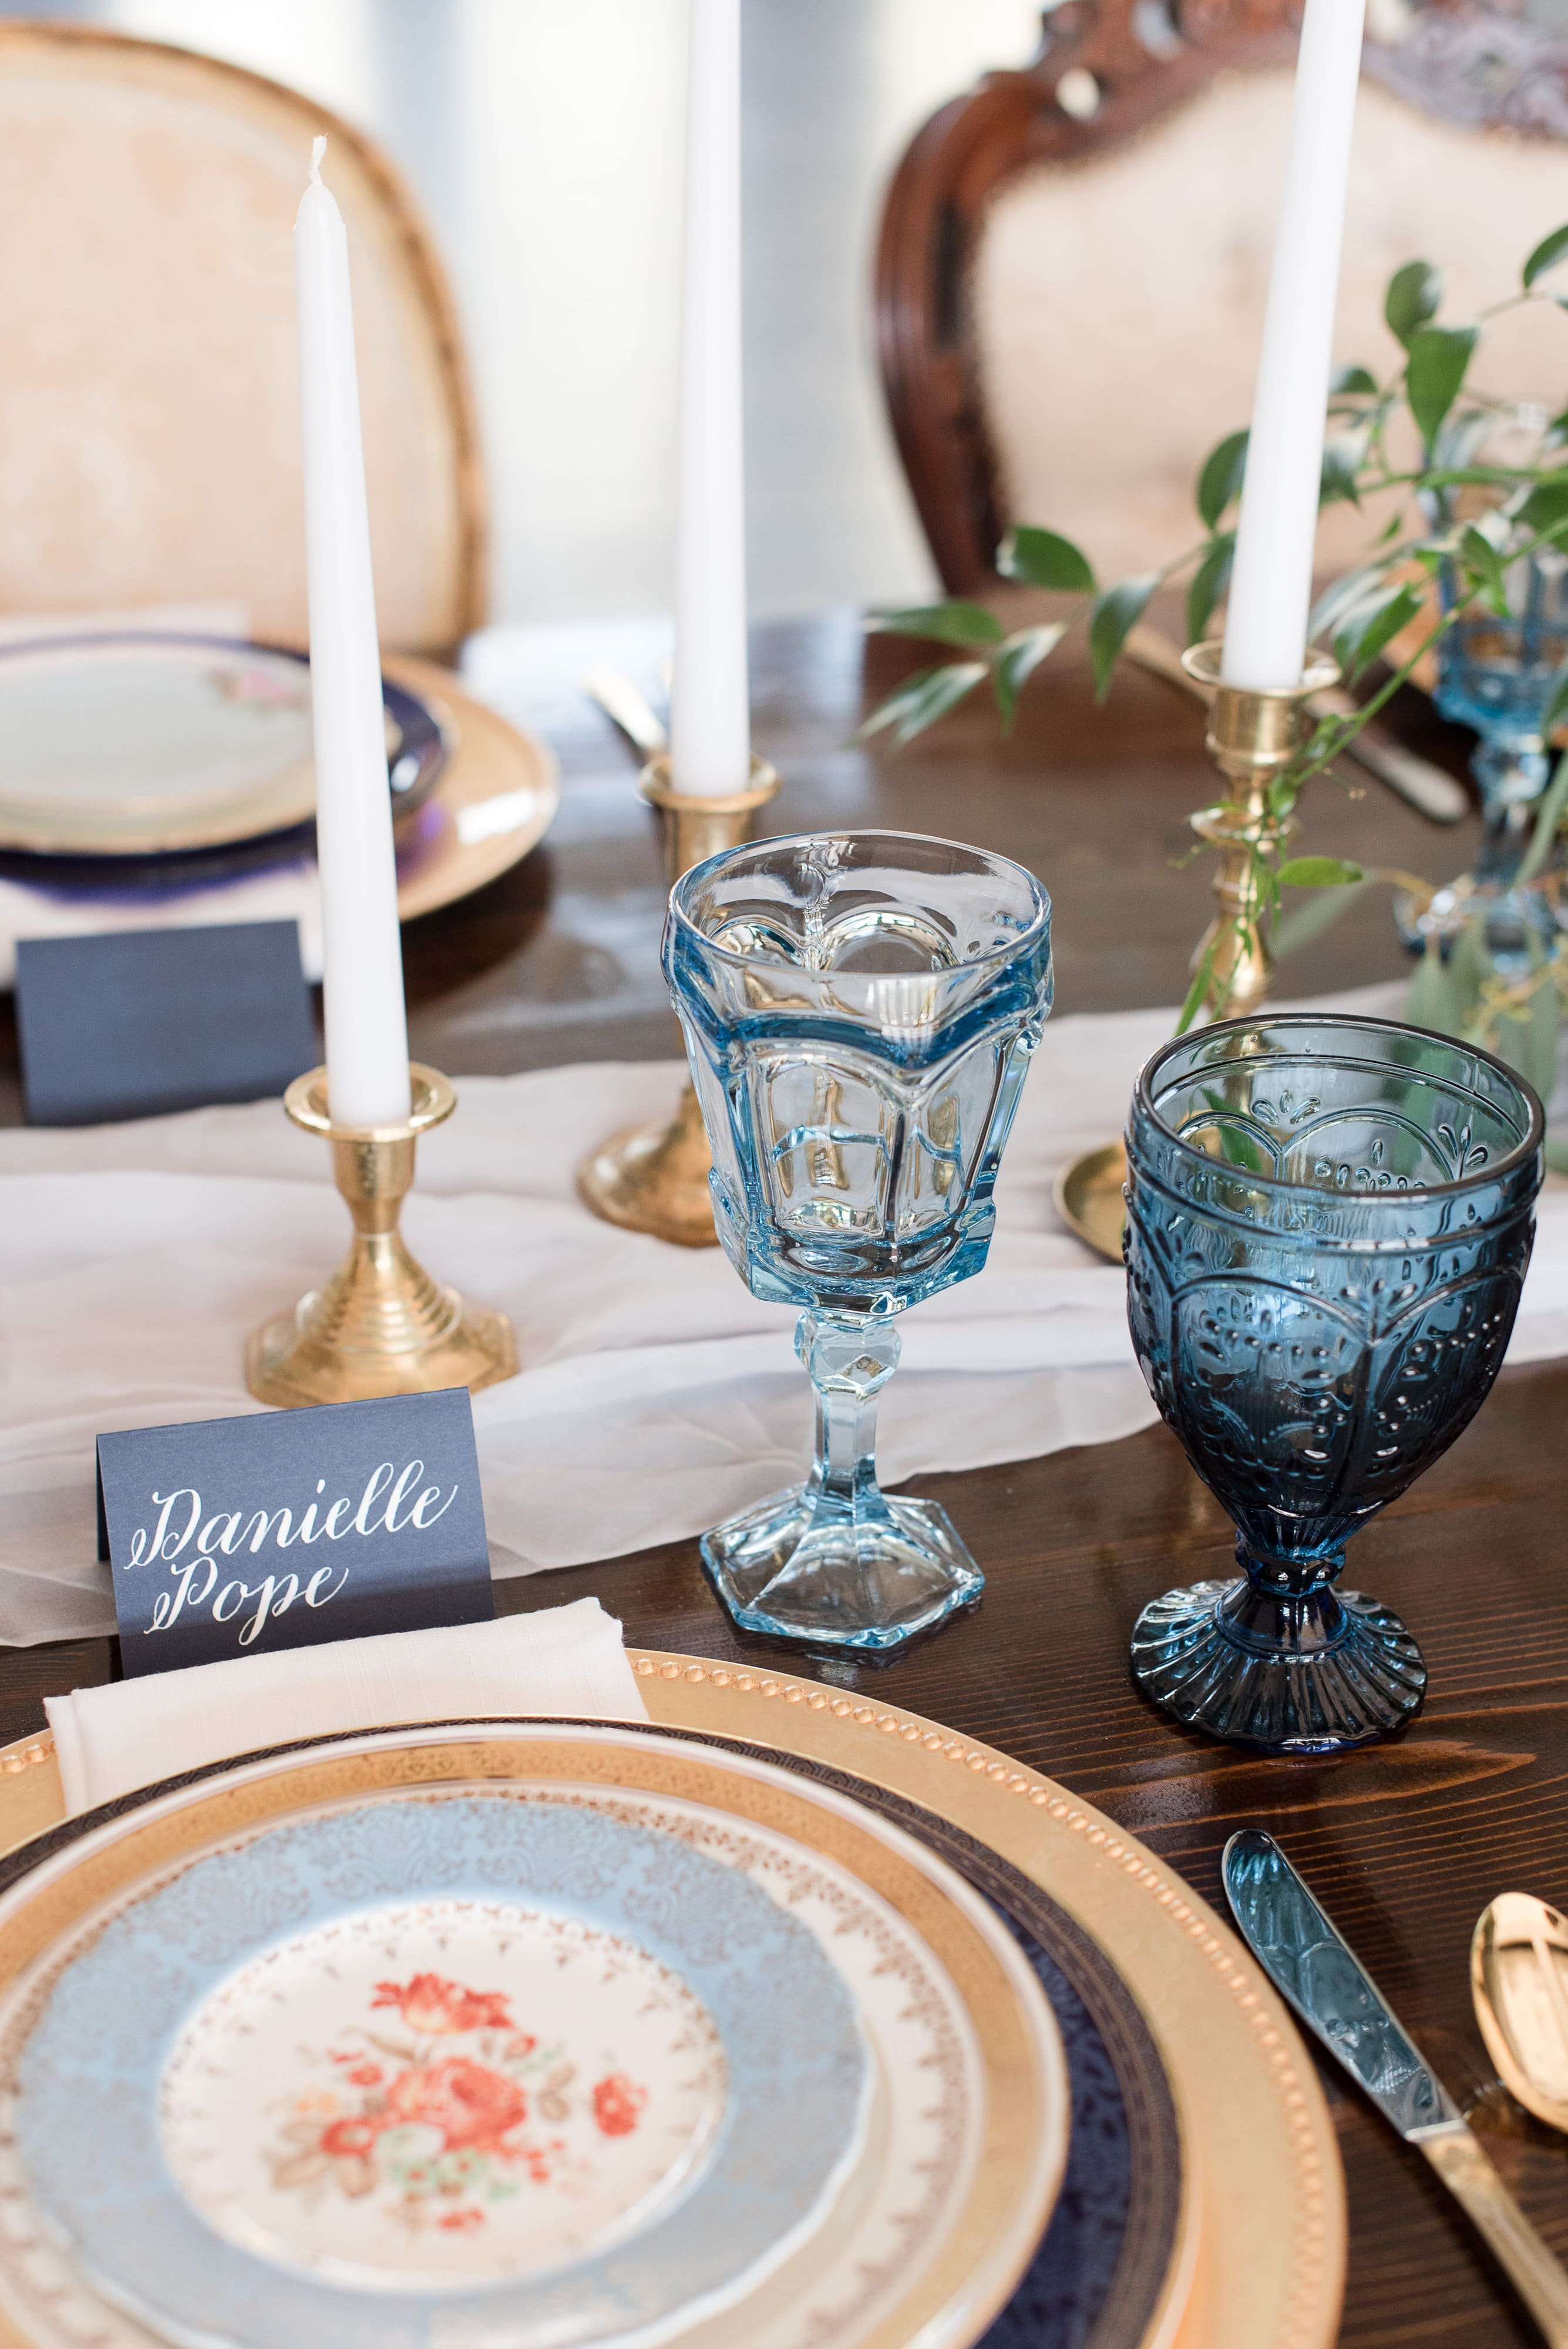 French blue place setting for a wedding reception at Southern Charm Events